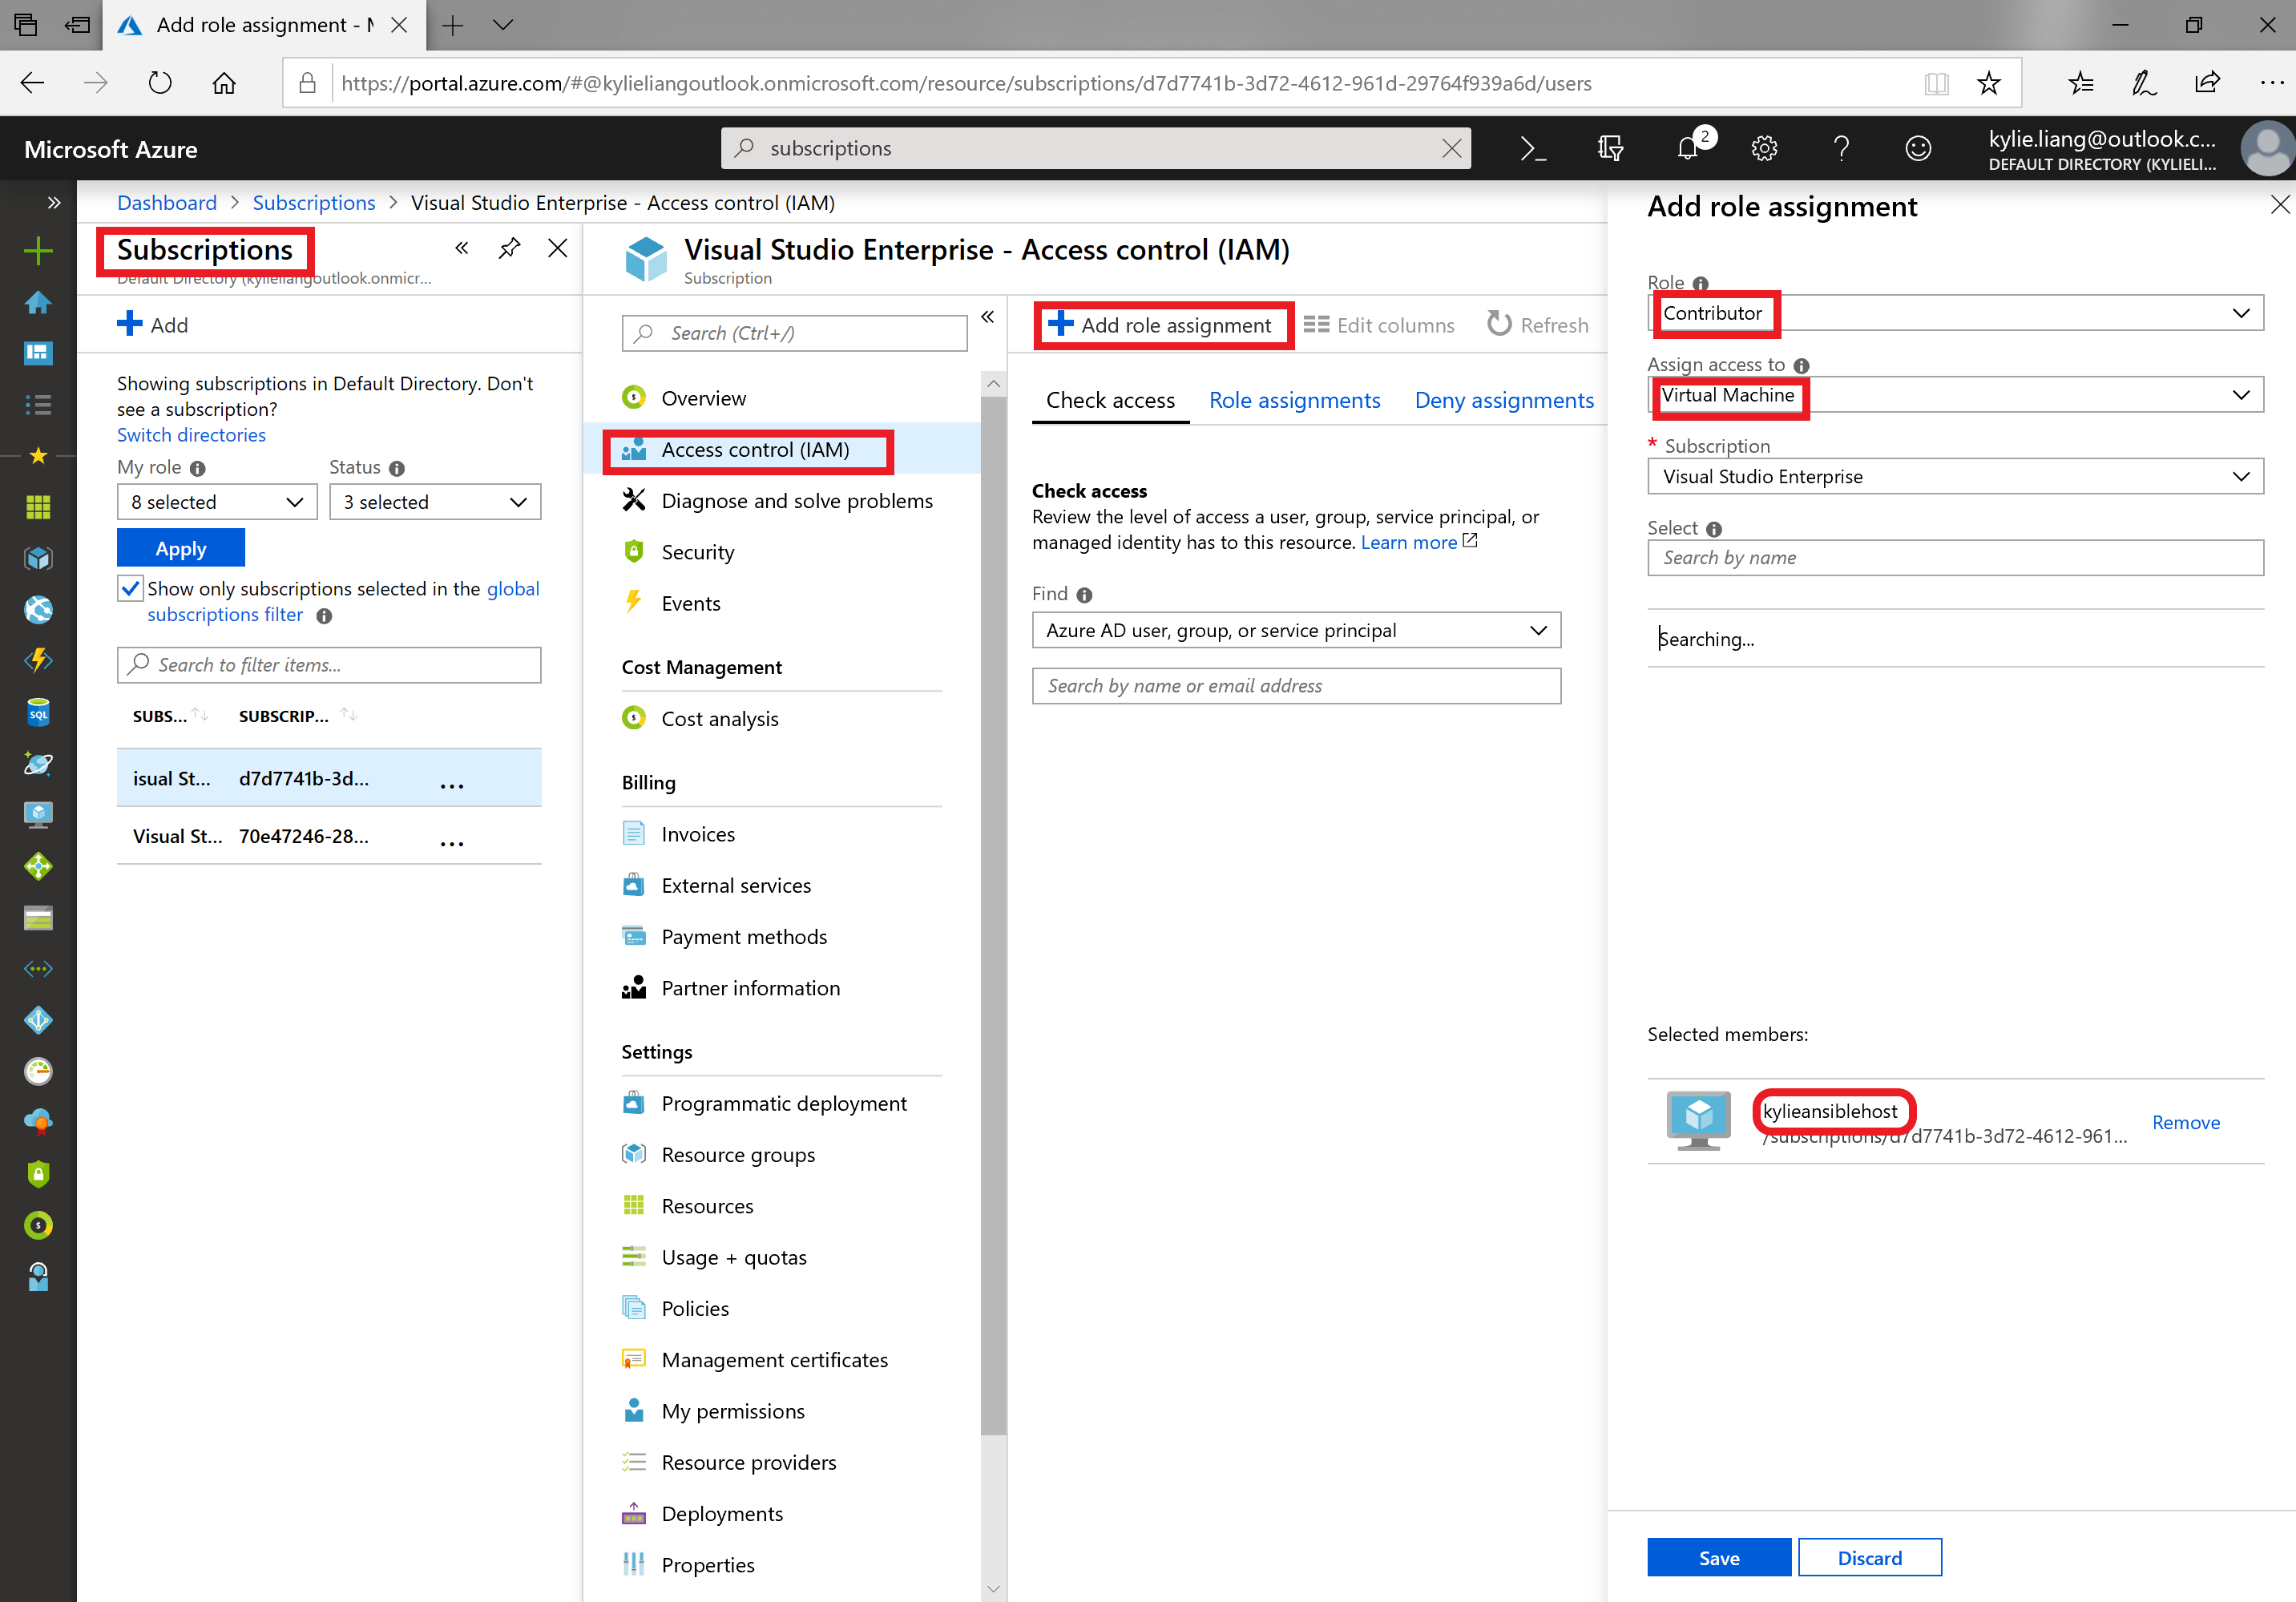 Screenshot of granting virtual machines access to subscriptions in the Azure portal